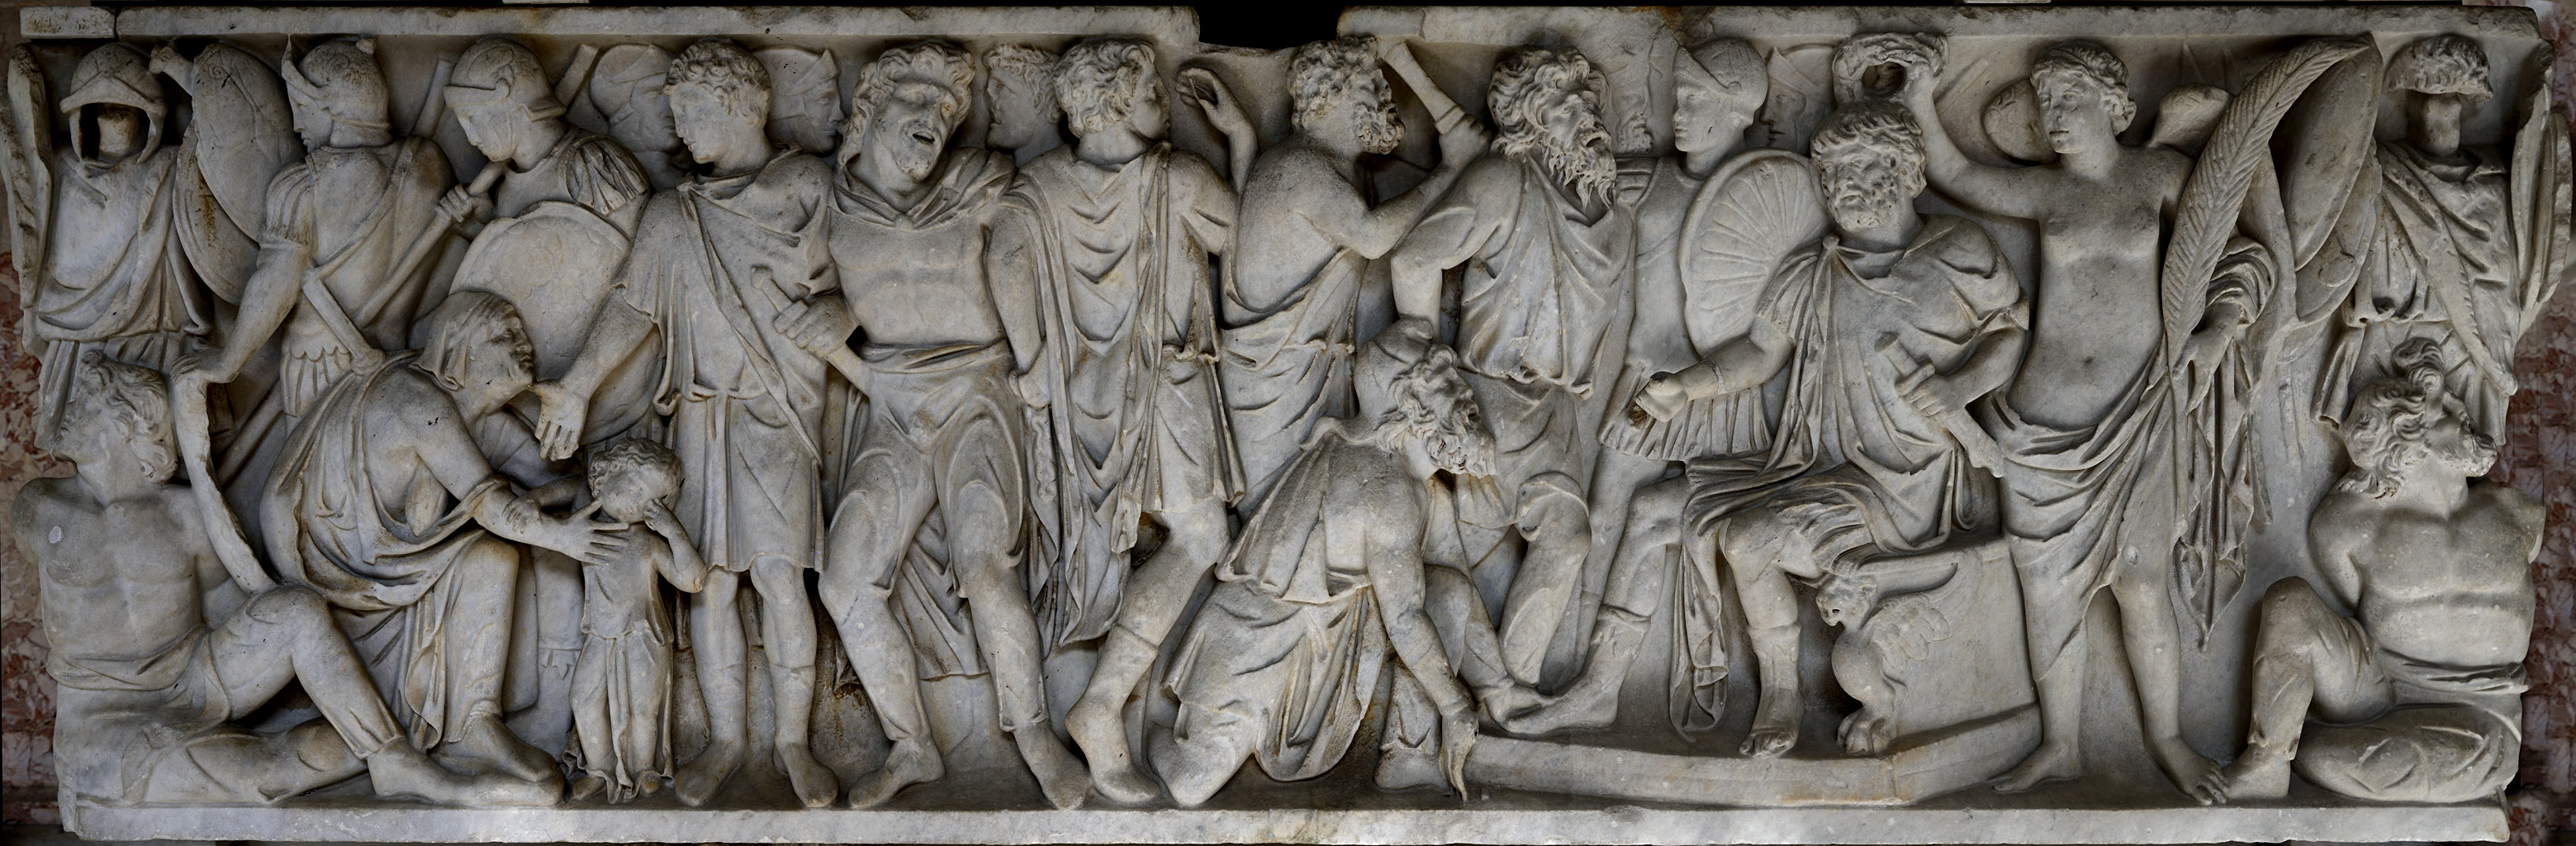 Front panel of a sarcophagus of a roman military officer with a scene of clemency. Marble. Ca. 180 CE. Inv. No. 942. Rome, Vatican Museums, Pius-Clementine Museum, Octagonal Court, Nord portico, 15